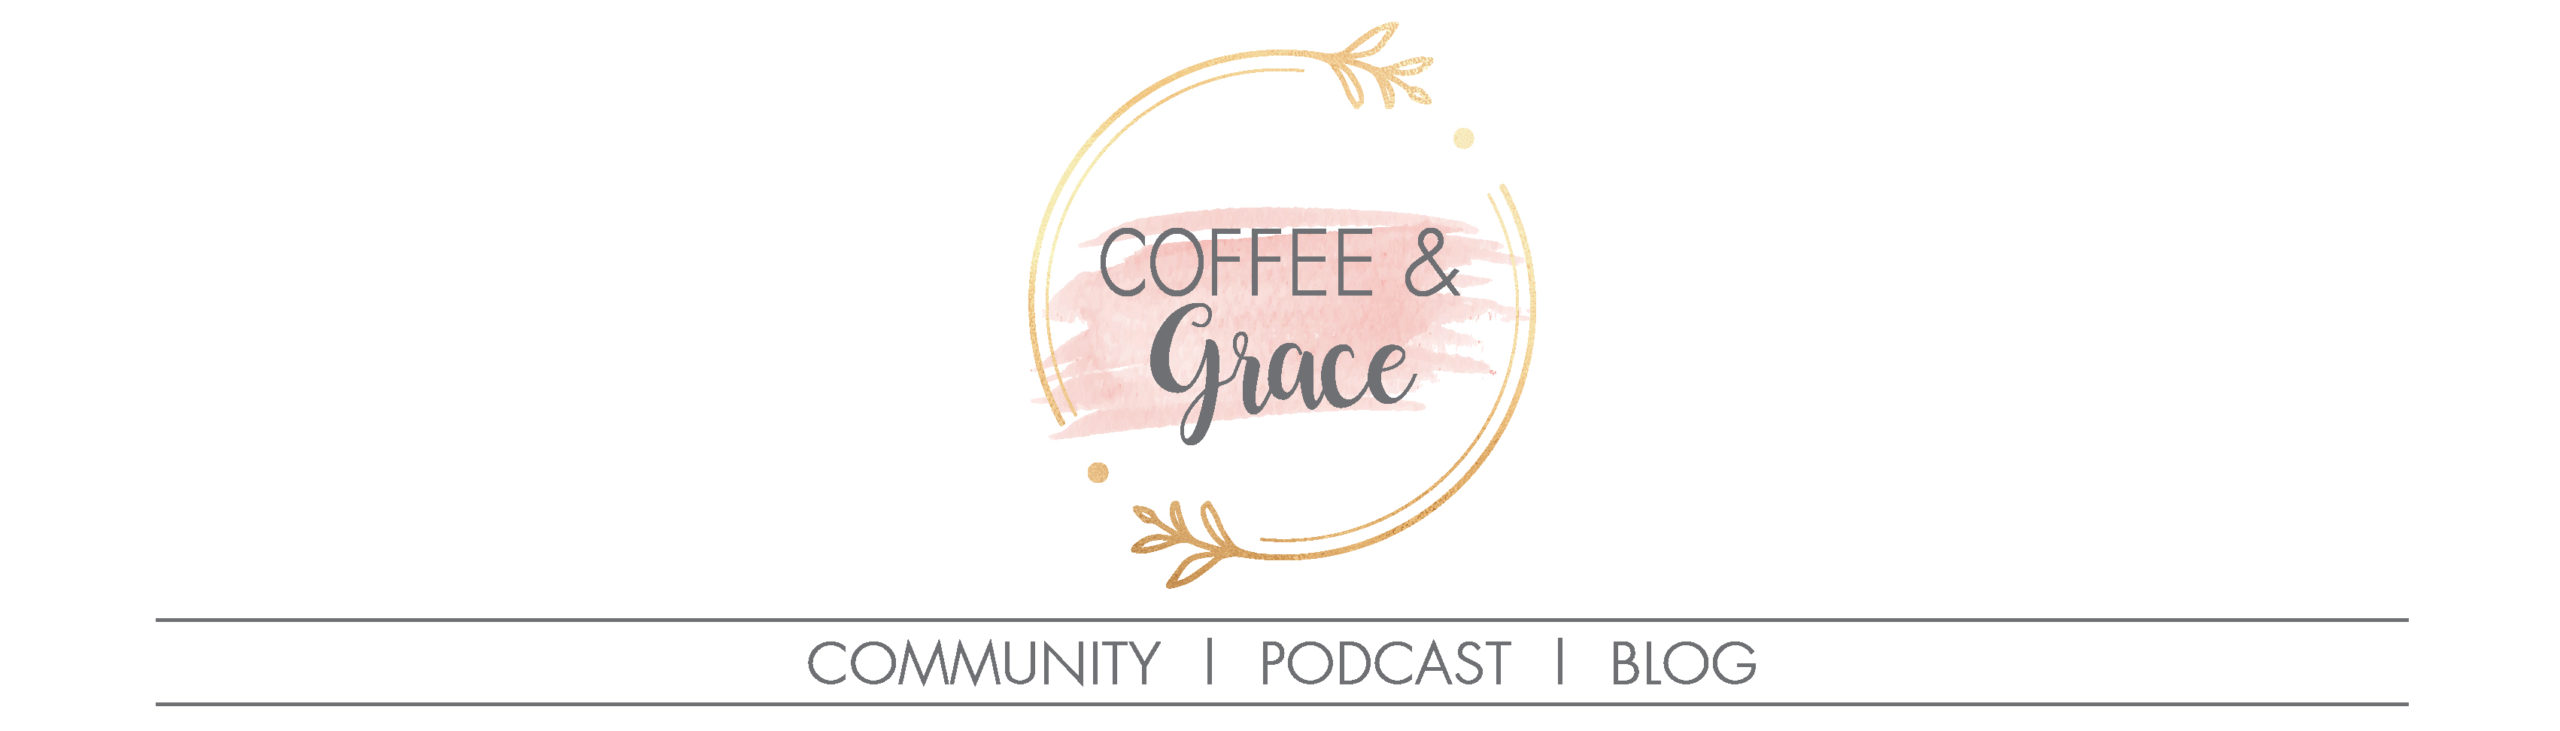 Coffee & Grace